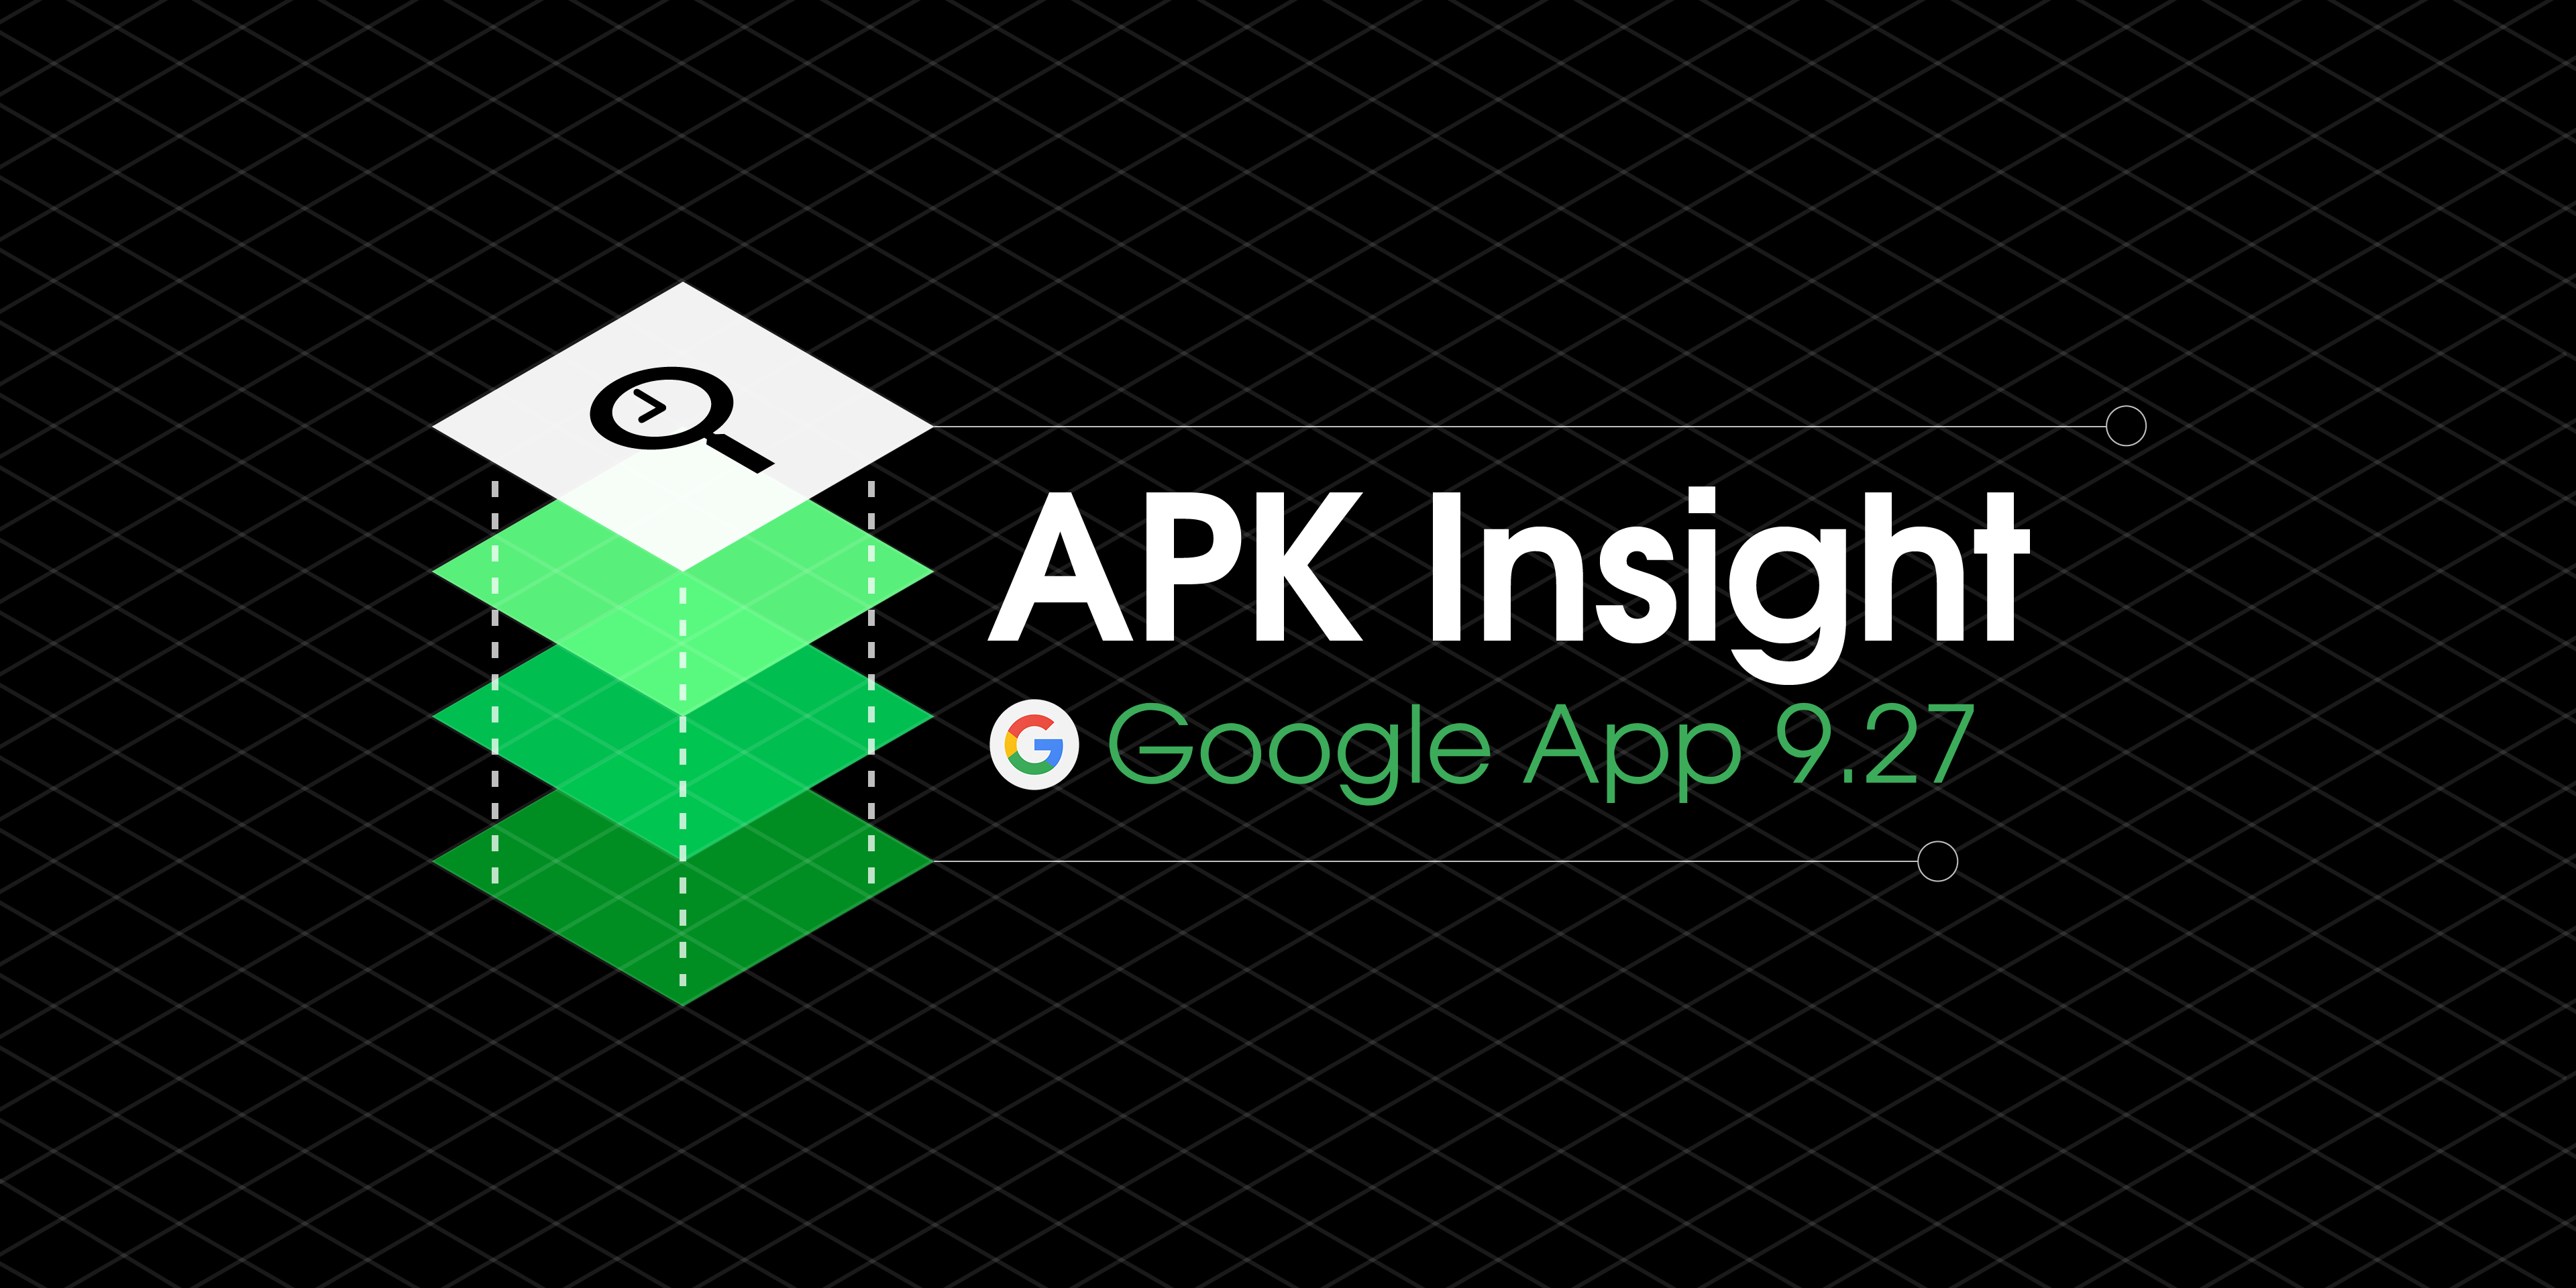 Google app 9.27 more widely rolls out Material Theme bottom bar, Settings revamp, Collection sharing [APK Insight]